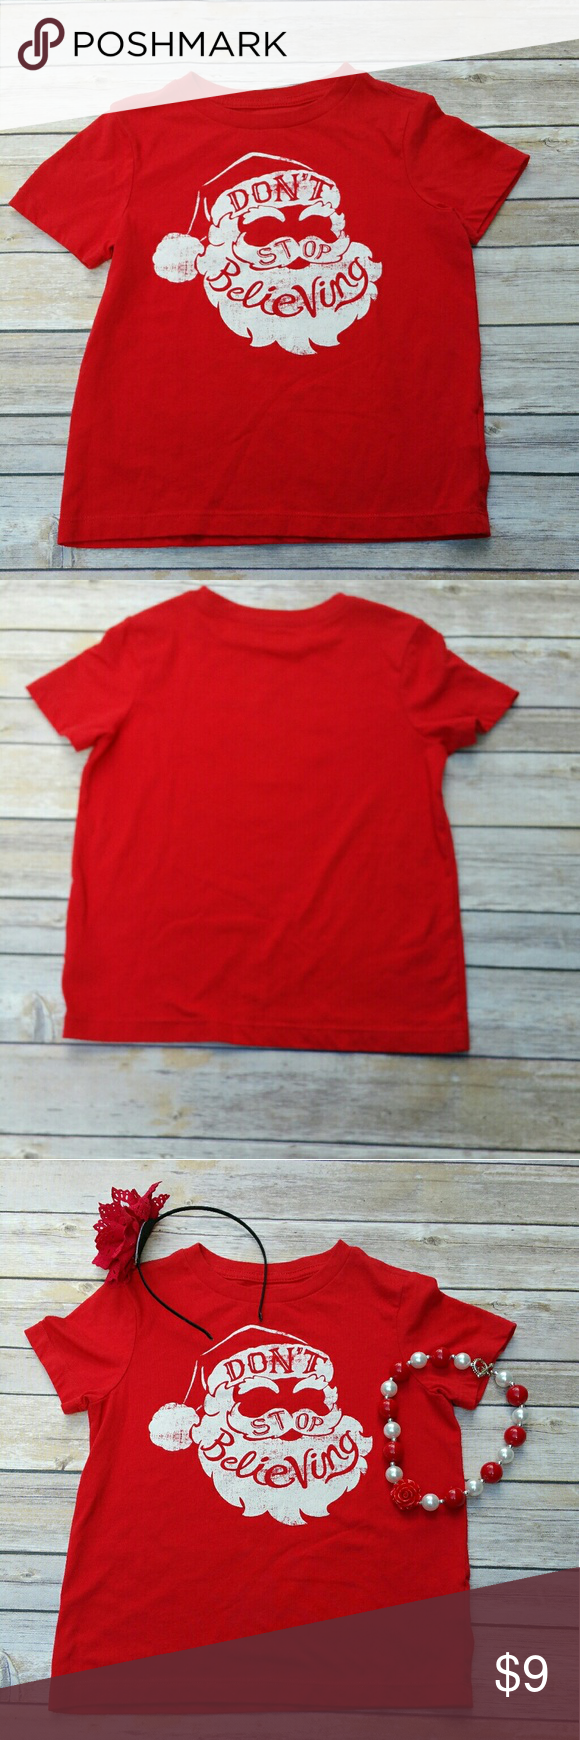 Old Navy Christmas T Shirts - Our T Shirt